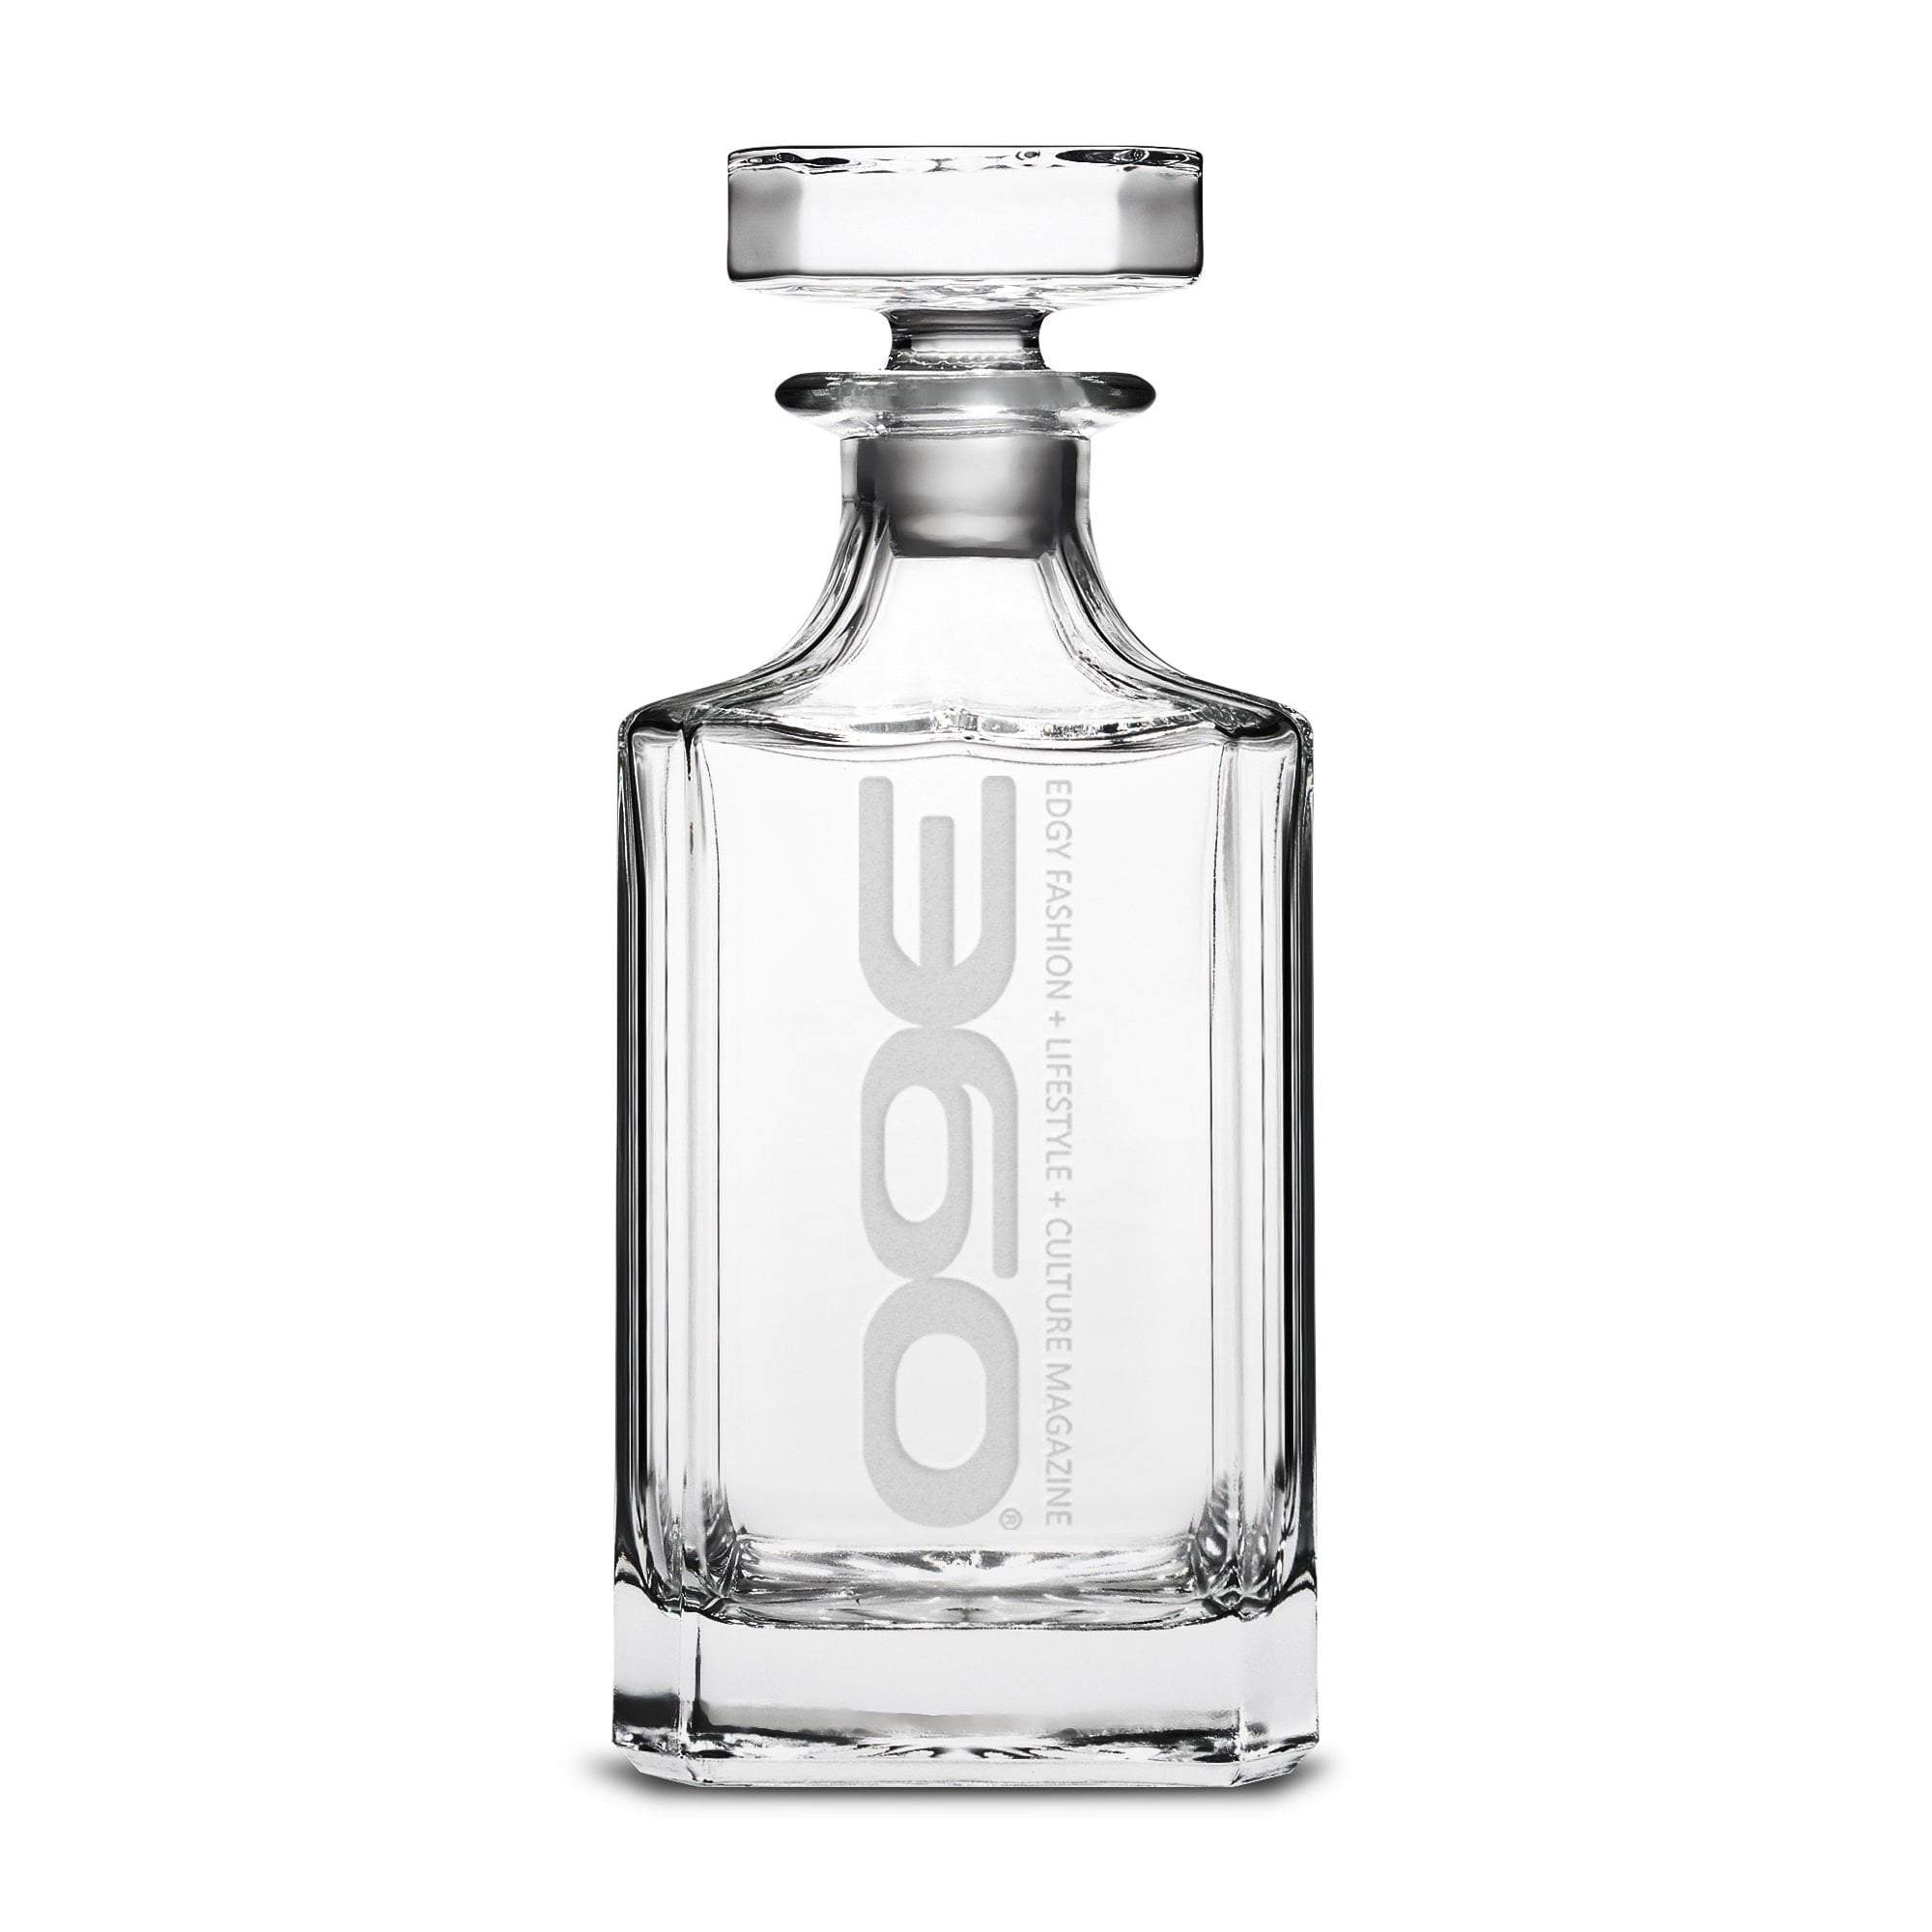 360 Magazine Refillable Diamond Decanter, 750mL Integrity Bottles